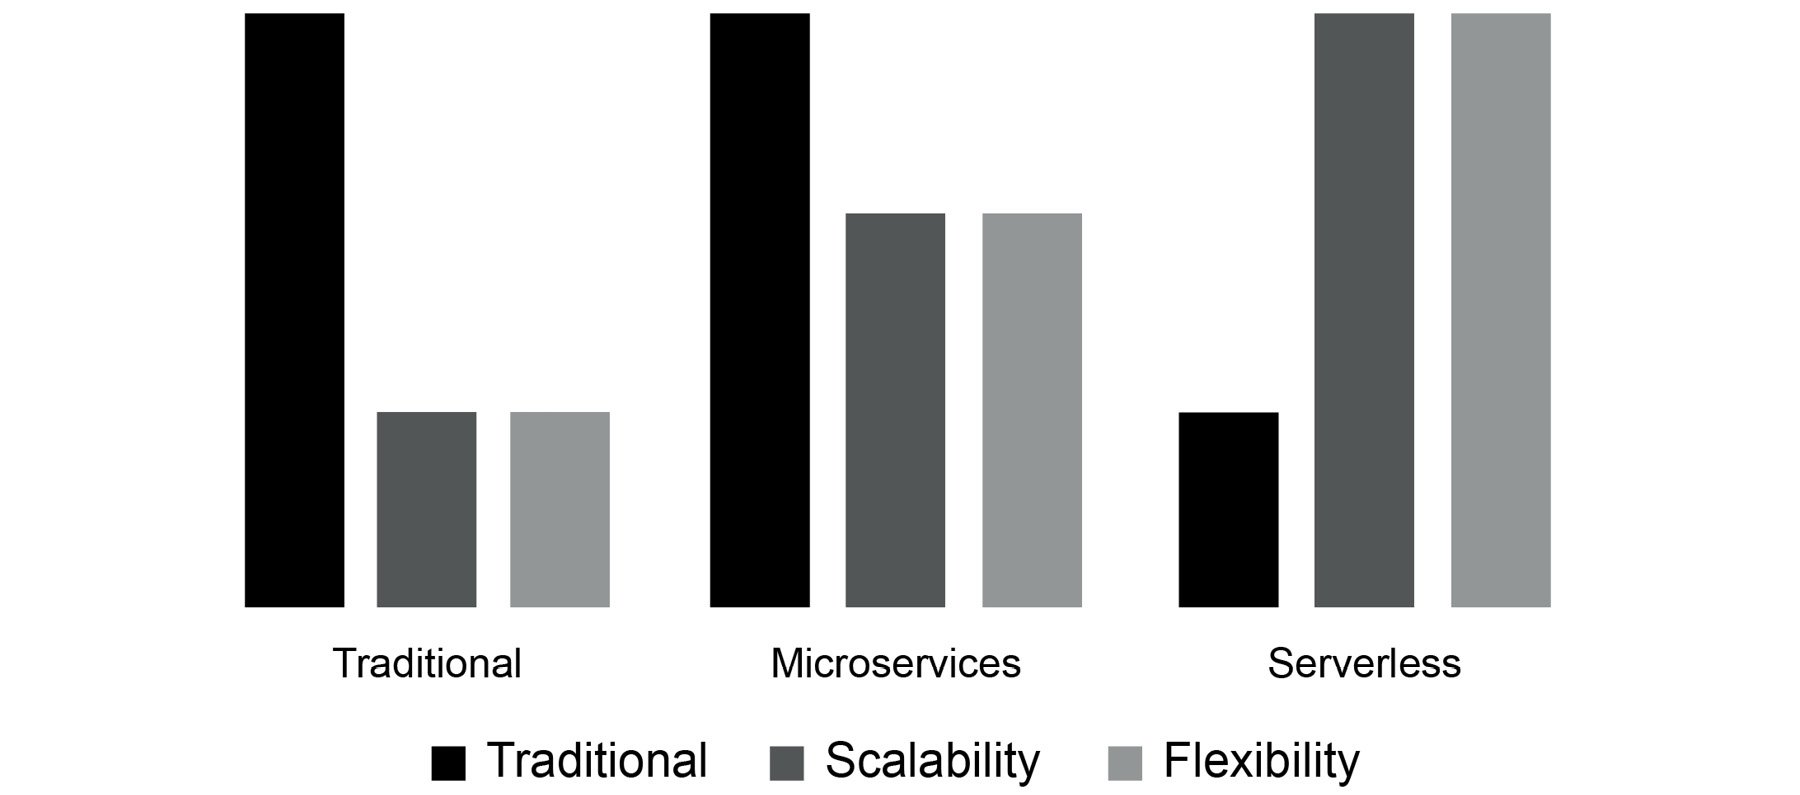 Figure 1.9: Benefits of the transition from cost to serverless